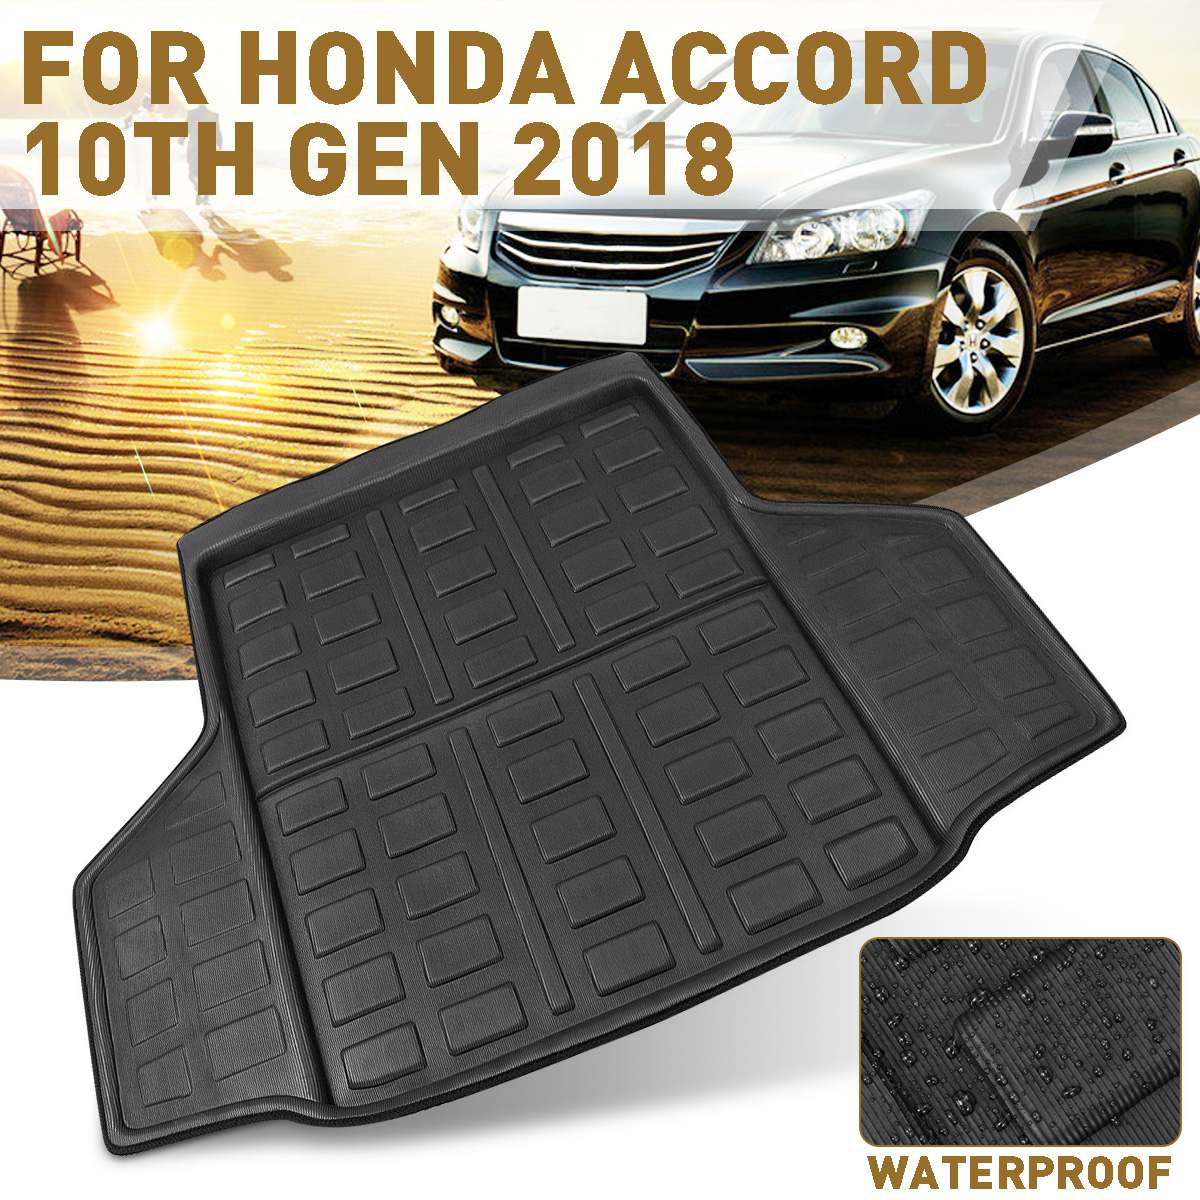 Car Rear Trunk Liner Boot Cargo Mat Tray Boot Floor Carpet For Honda For Accord 10th Generation 2018 Car Interior Accessories